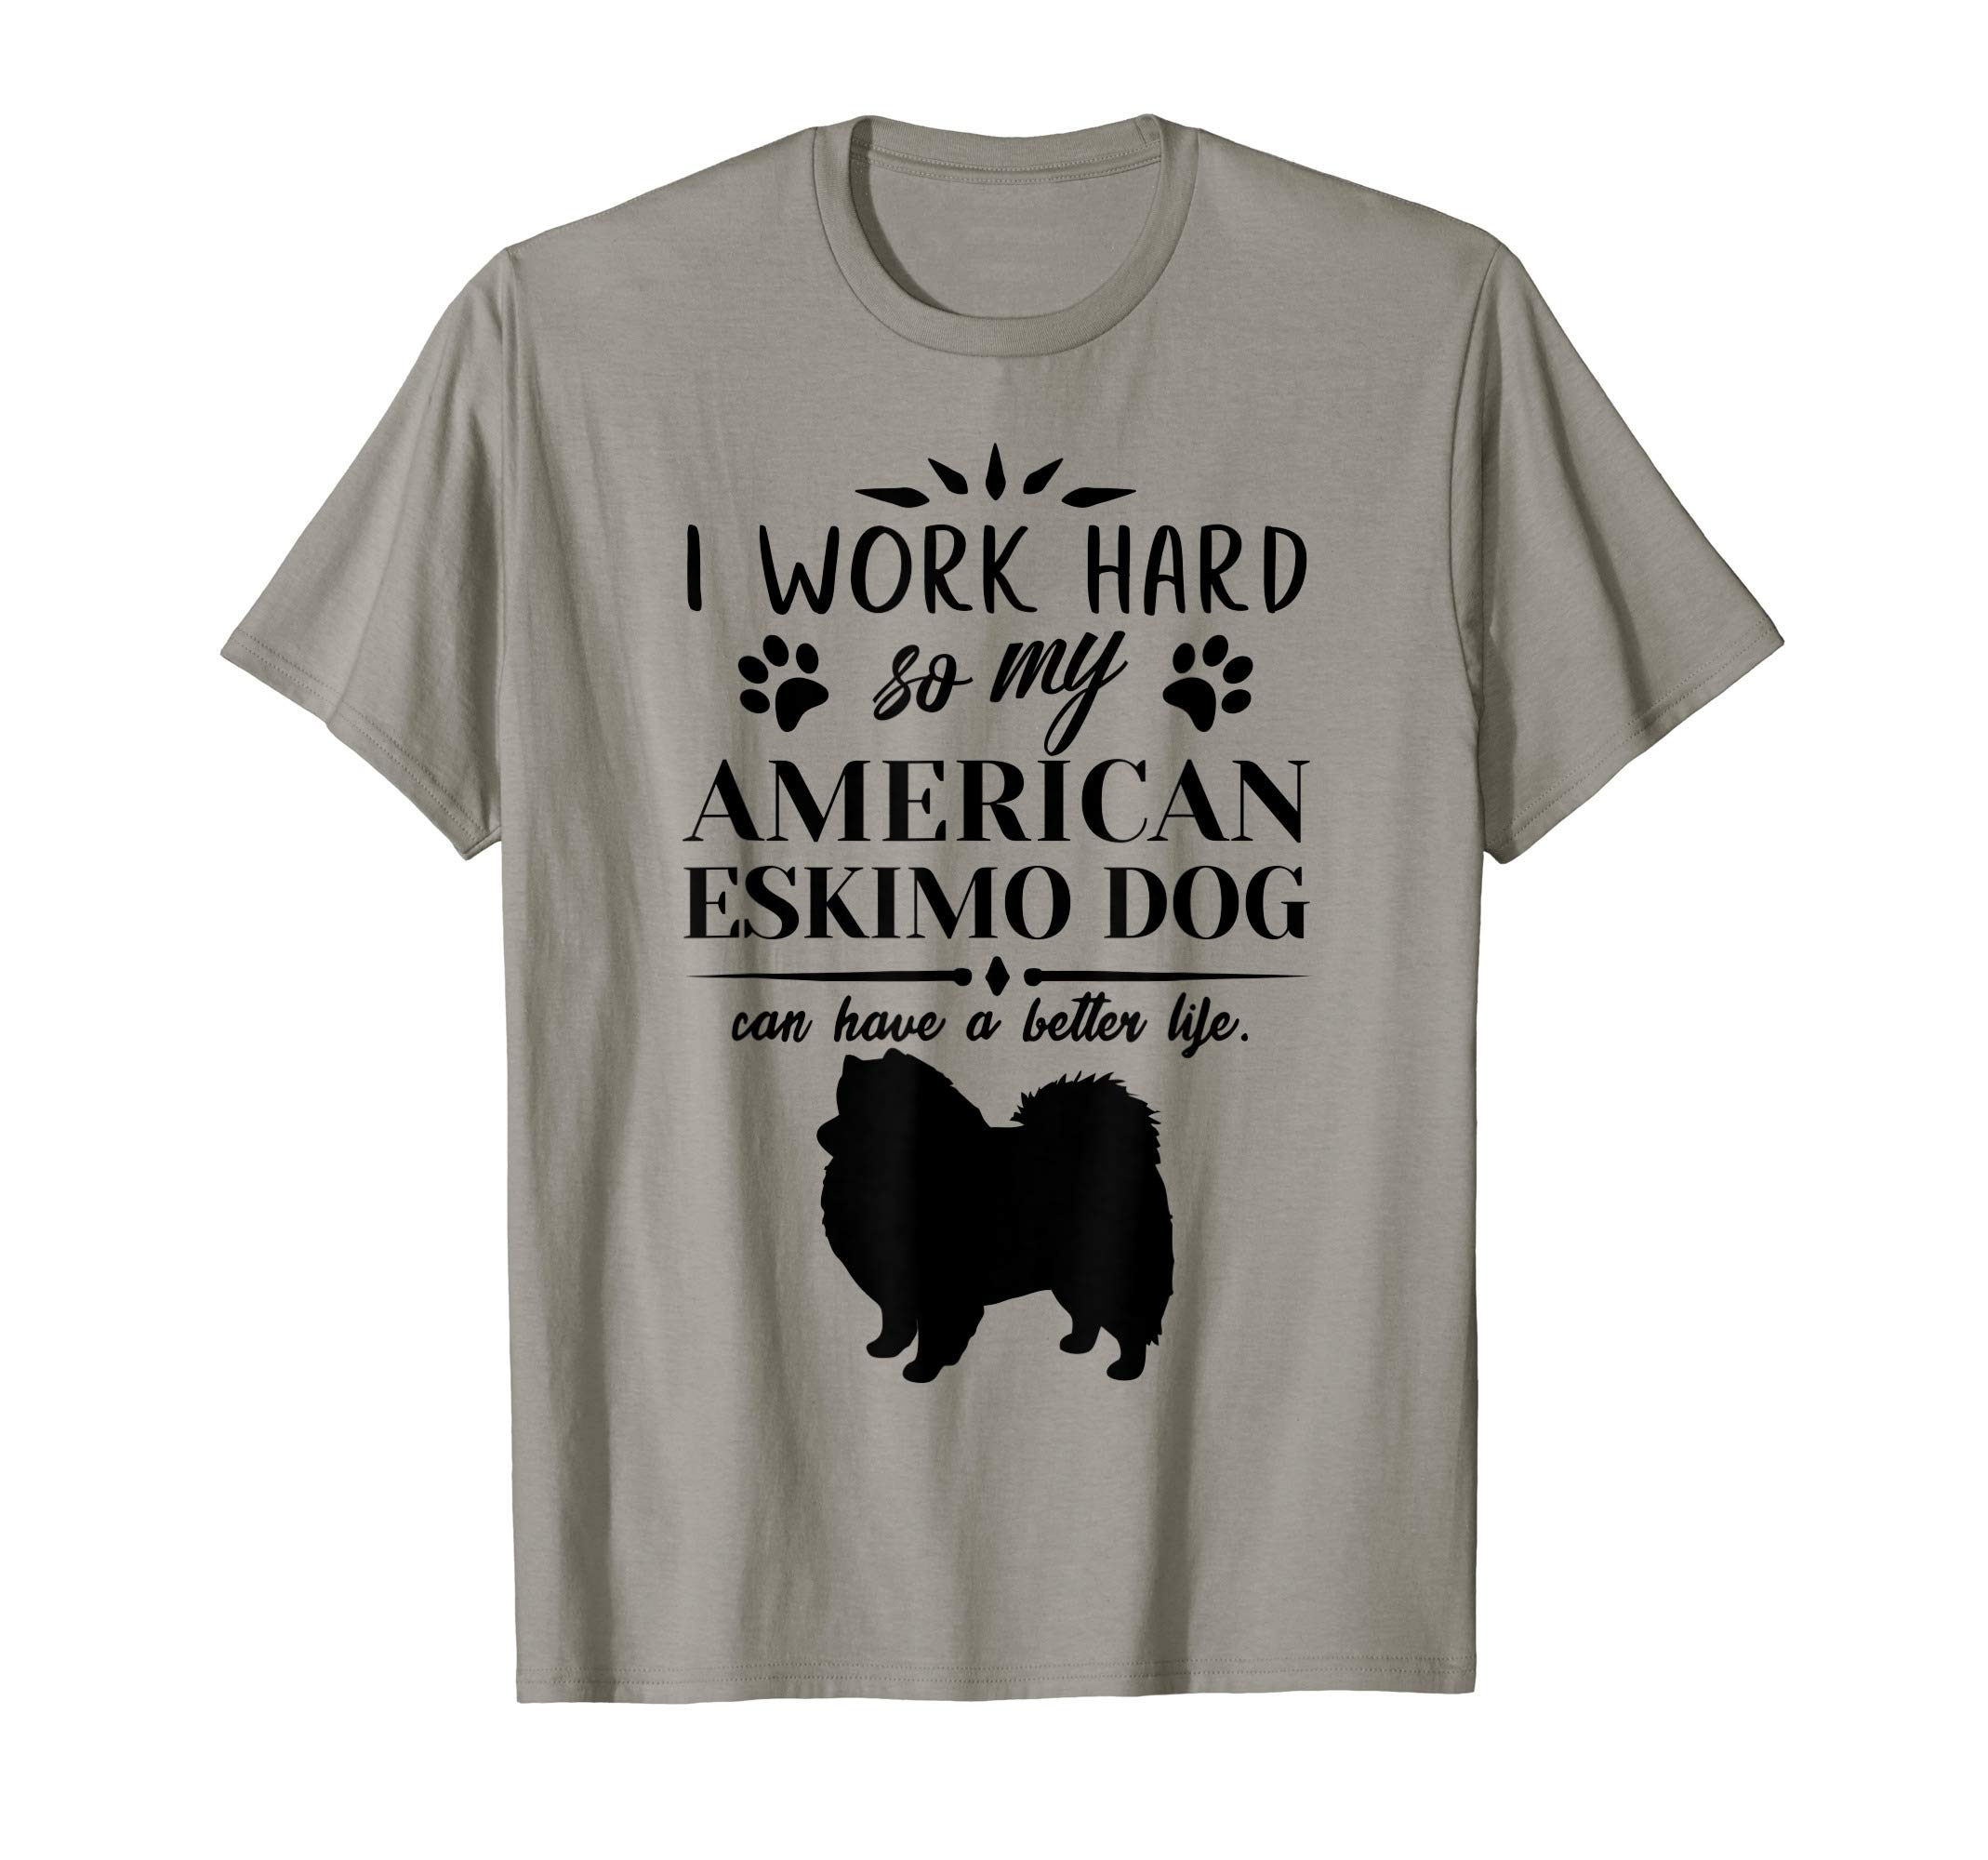 I work hard…, Dog Gift Idea, Funny American Eskimo Dog T-Shirt